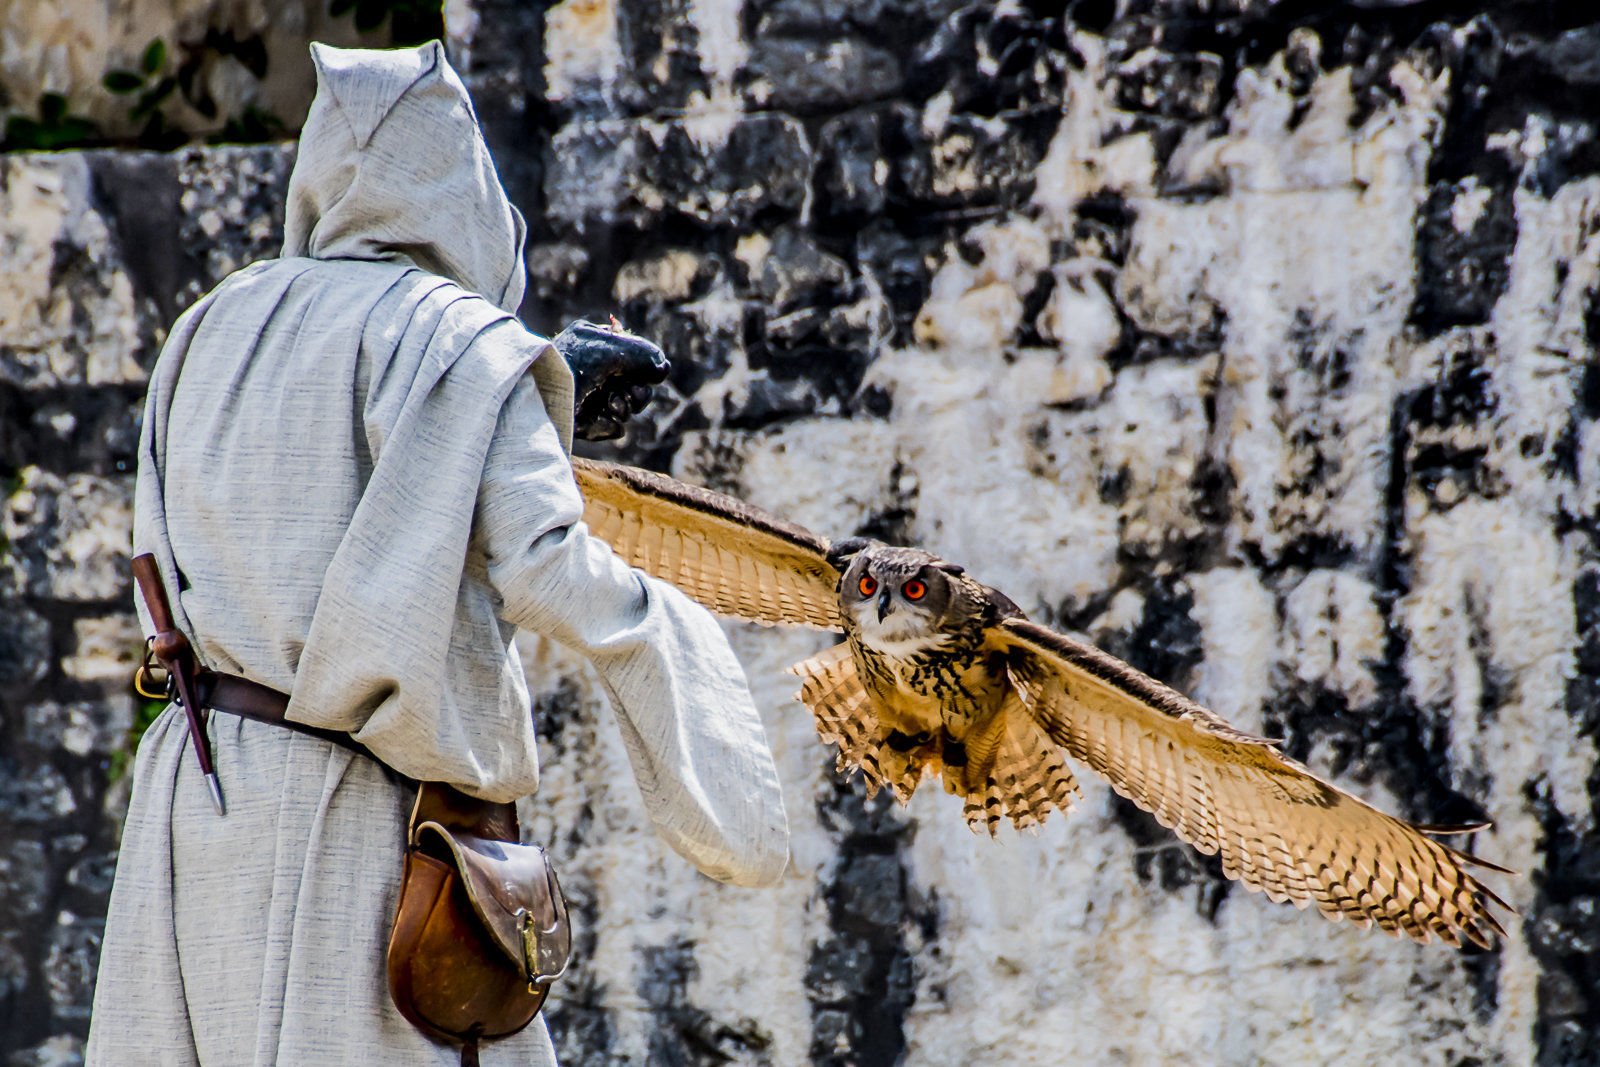 Owl coming in to land with handler, Provins